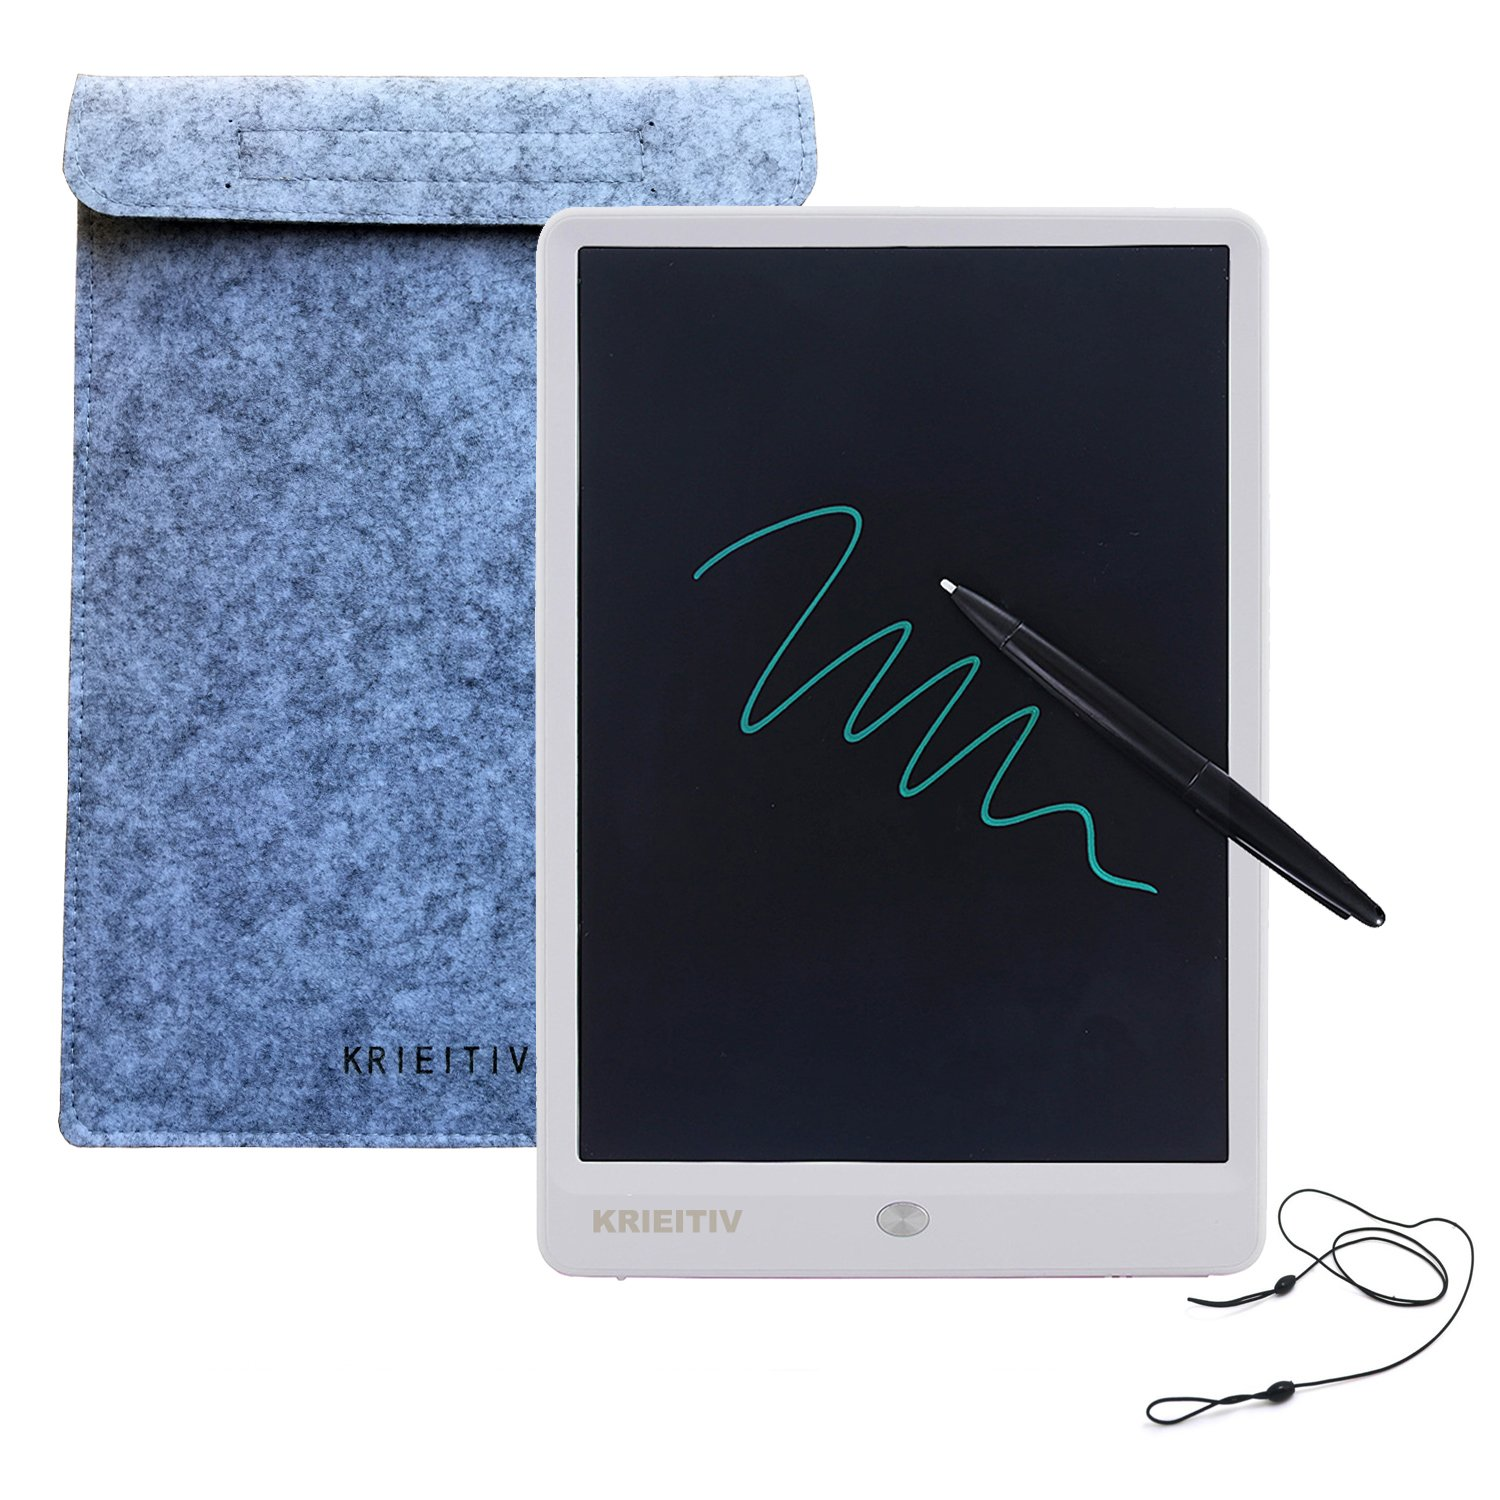 10 inch LCD Writing Tablet,KRIEITIV 10 inch LCD Drawing Board Message Board Handwriting Pad E-Write Drawing Graffiti Board with Stylus for Kids, Family Memo, Office Writing (White) DOIT